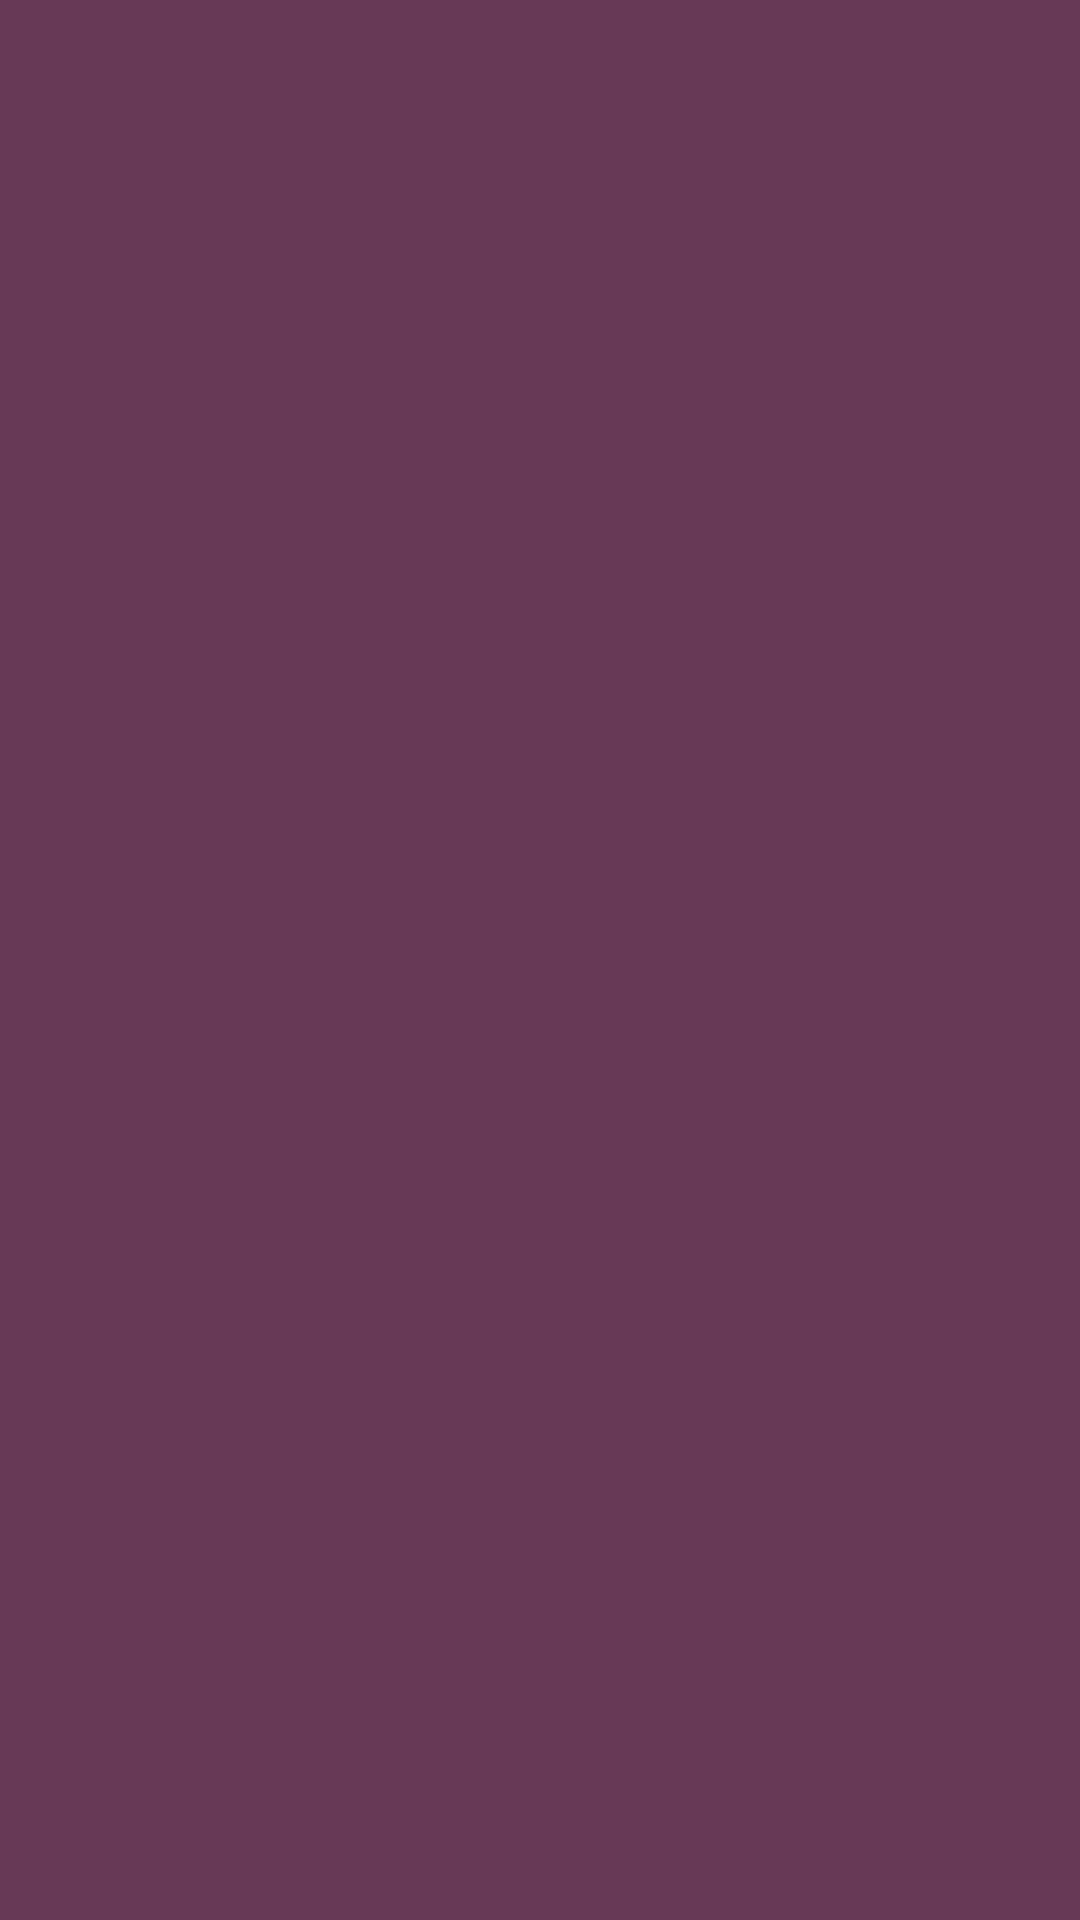 1080x1920 Halaya Ube Solid Color Background